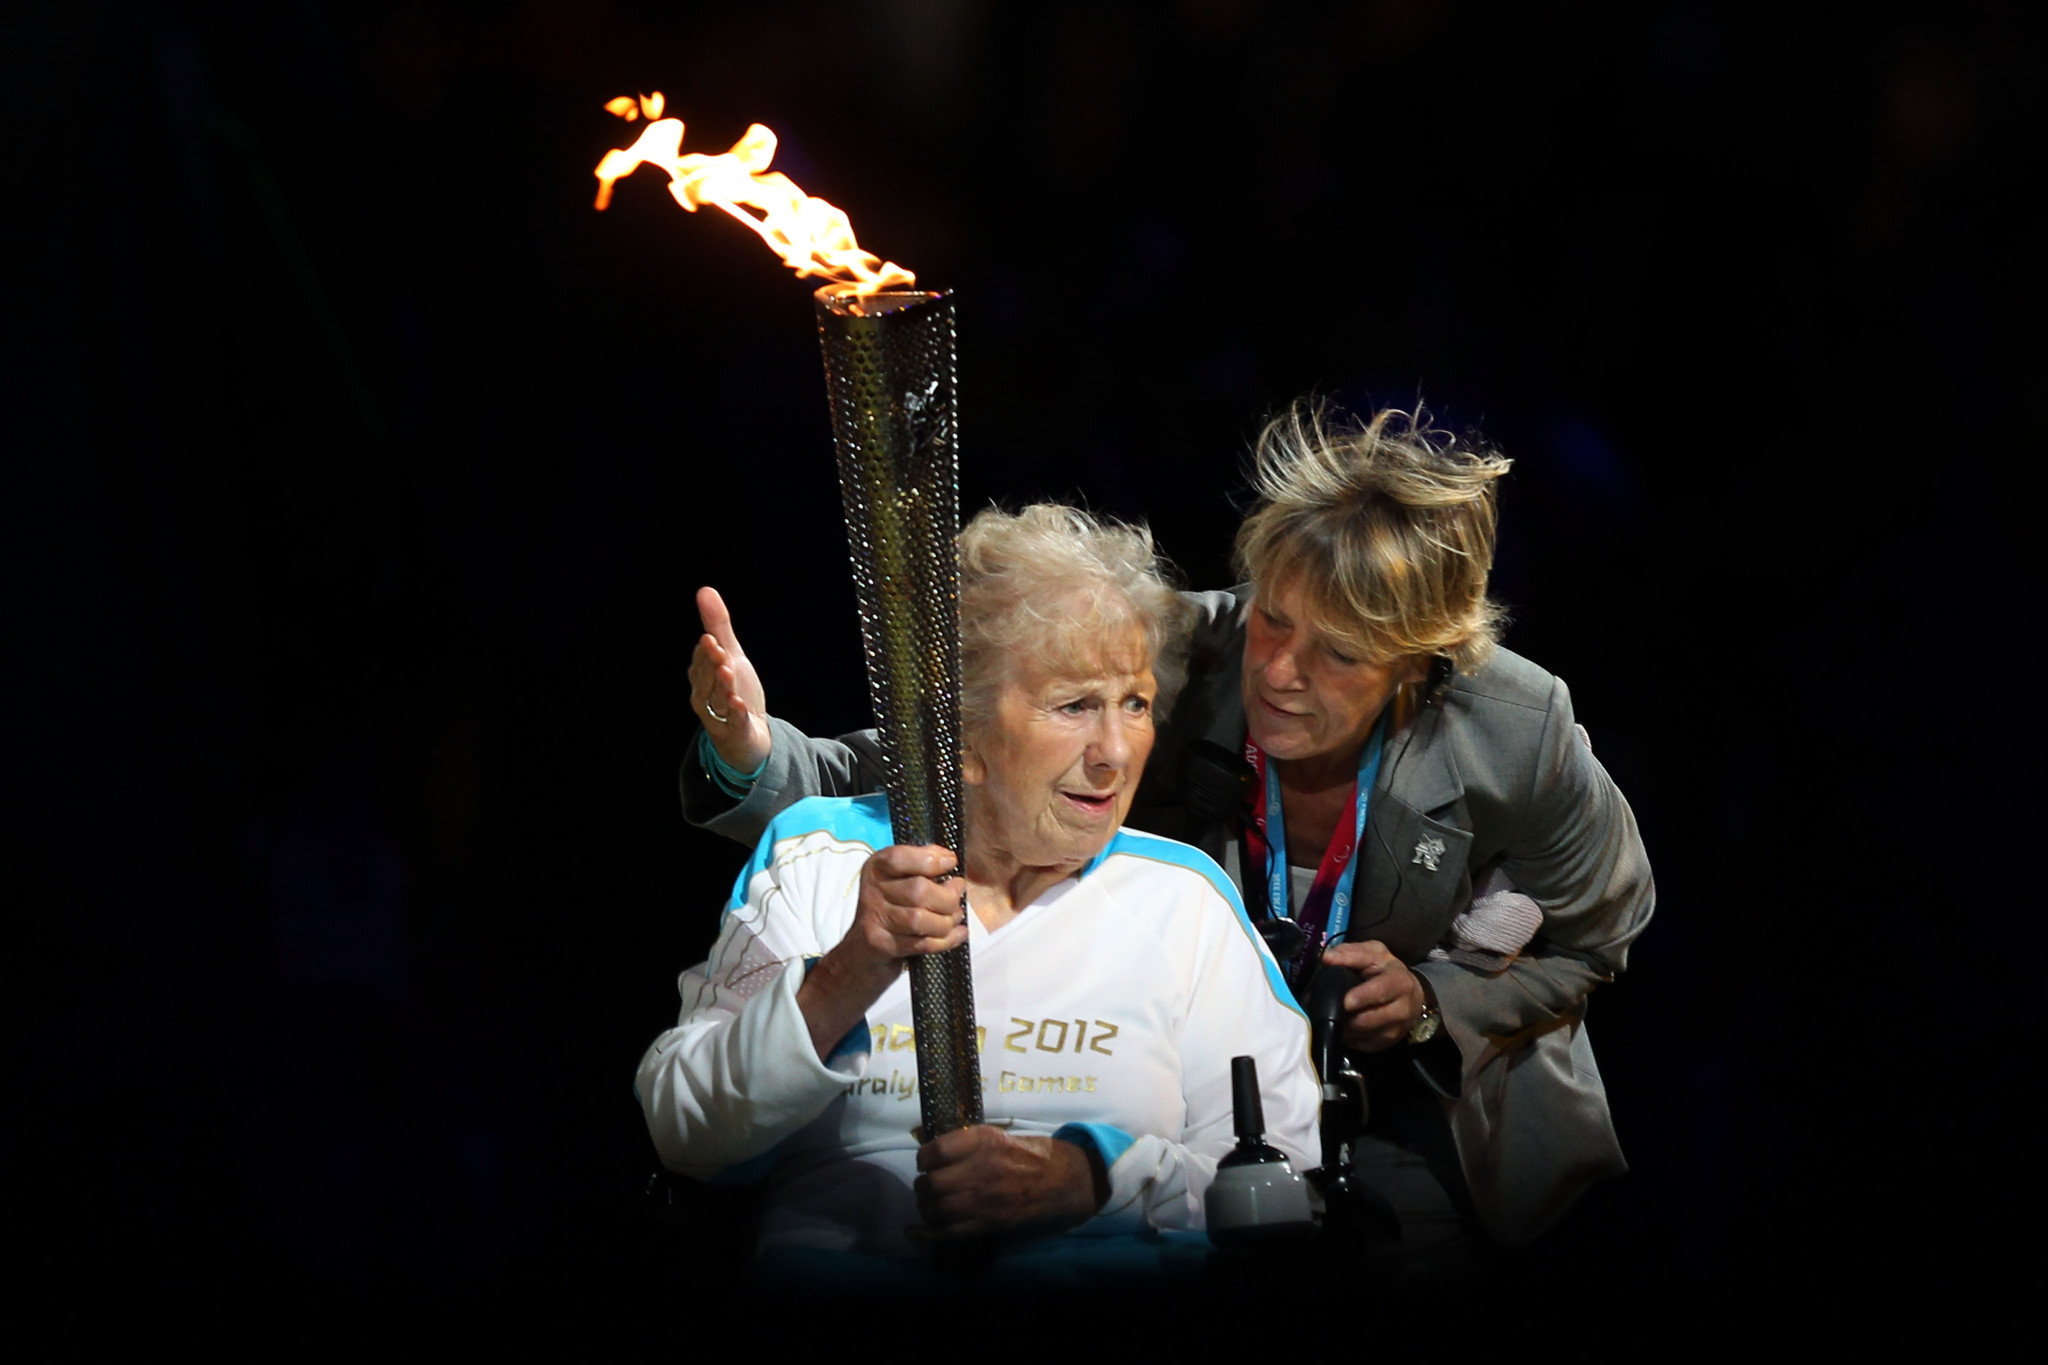 Paralympian Margaret Maughan carries the flame during the Opening Ceremony of the London 2012 Paralympics at the Olympic Stadium ©Getty Images